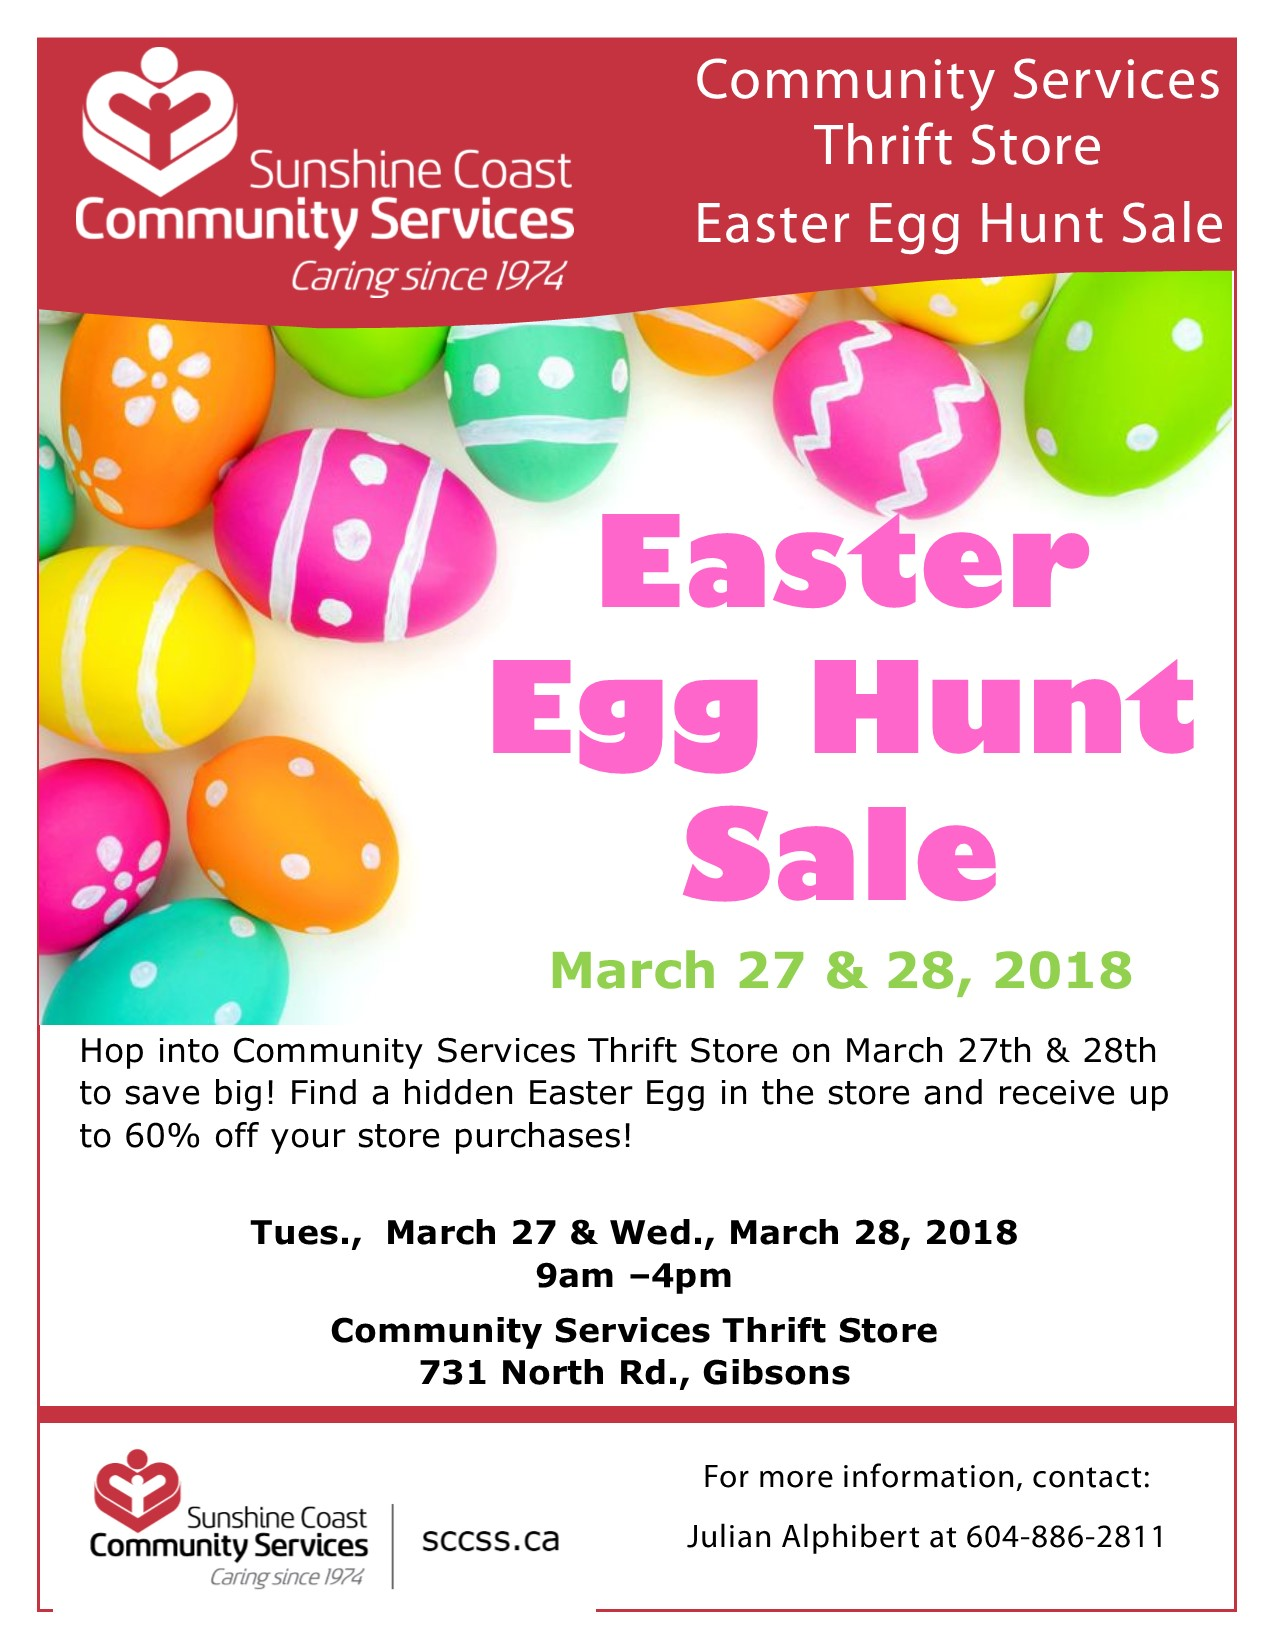 ThriftStore_EasterEggSale2018.jpg